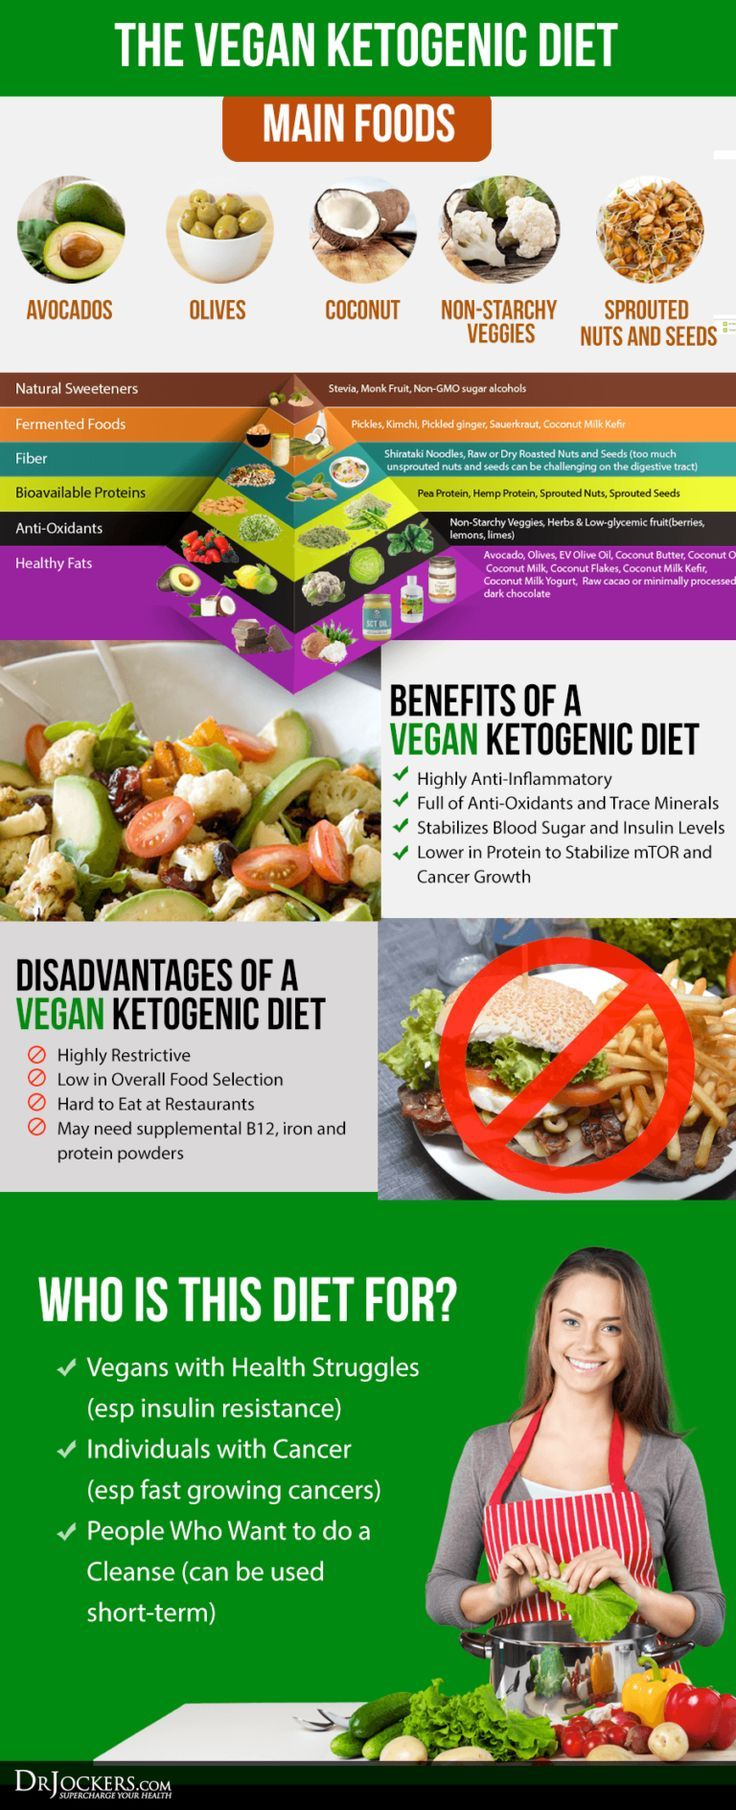 How To Follow A Vegan Ketogenic Diet How To Follow A Vegan Ketogenic Diet /